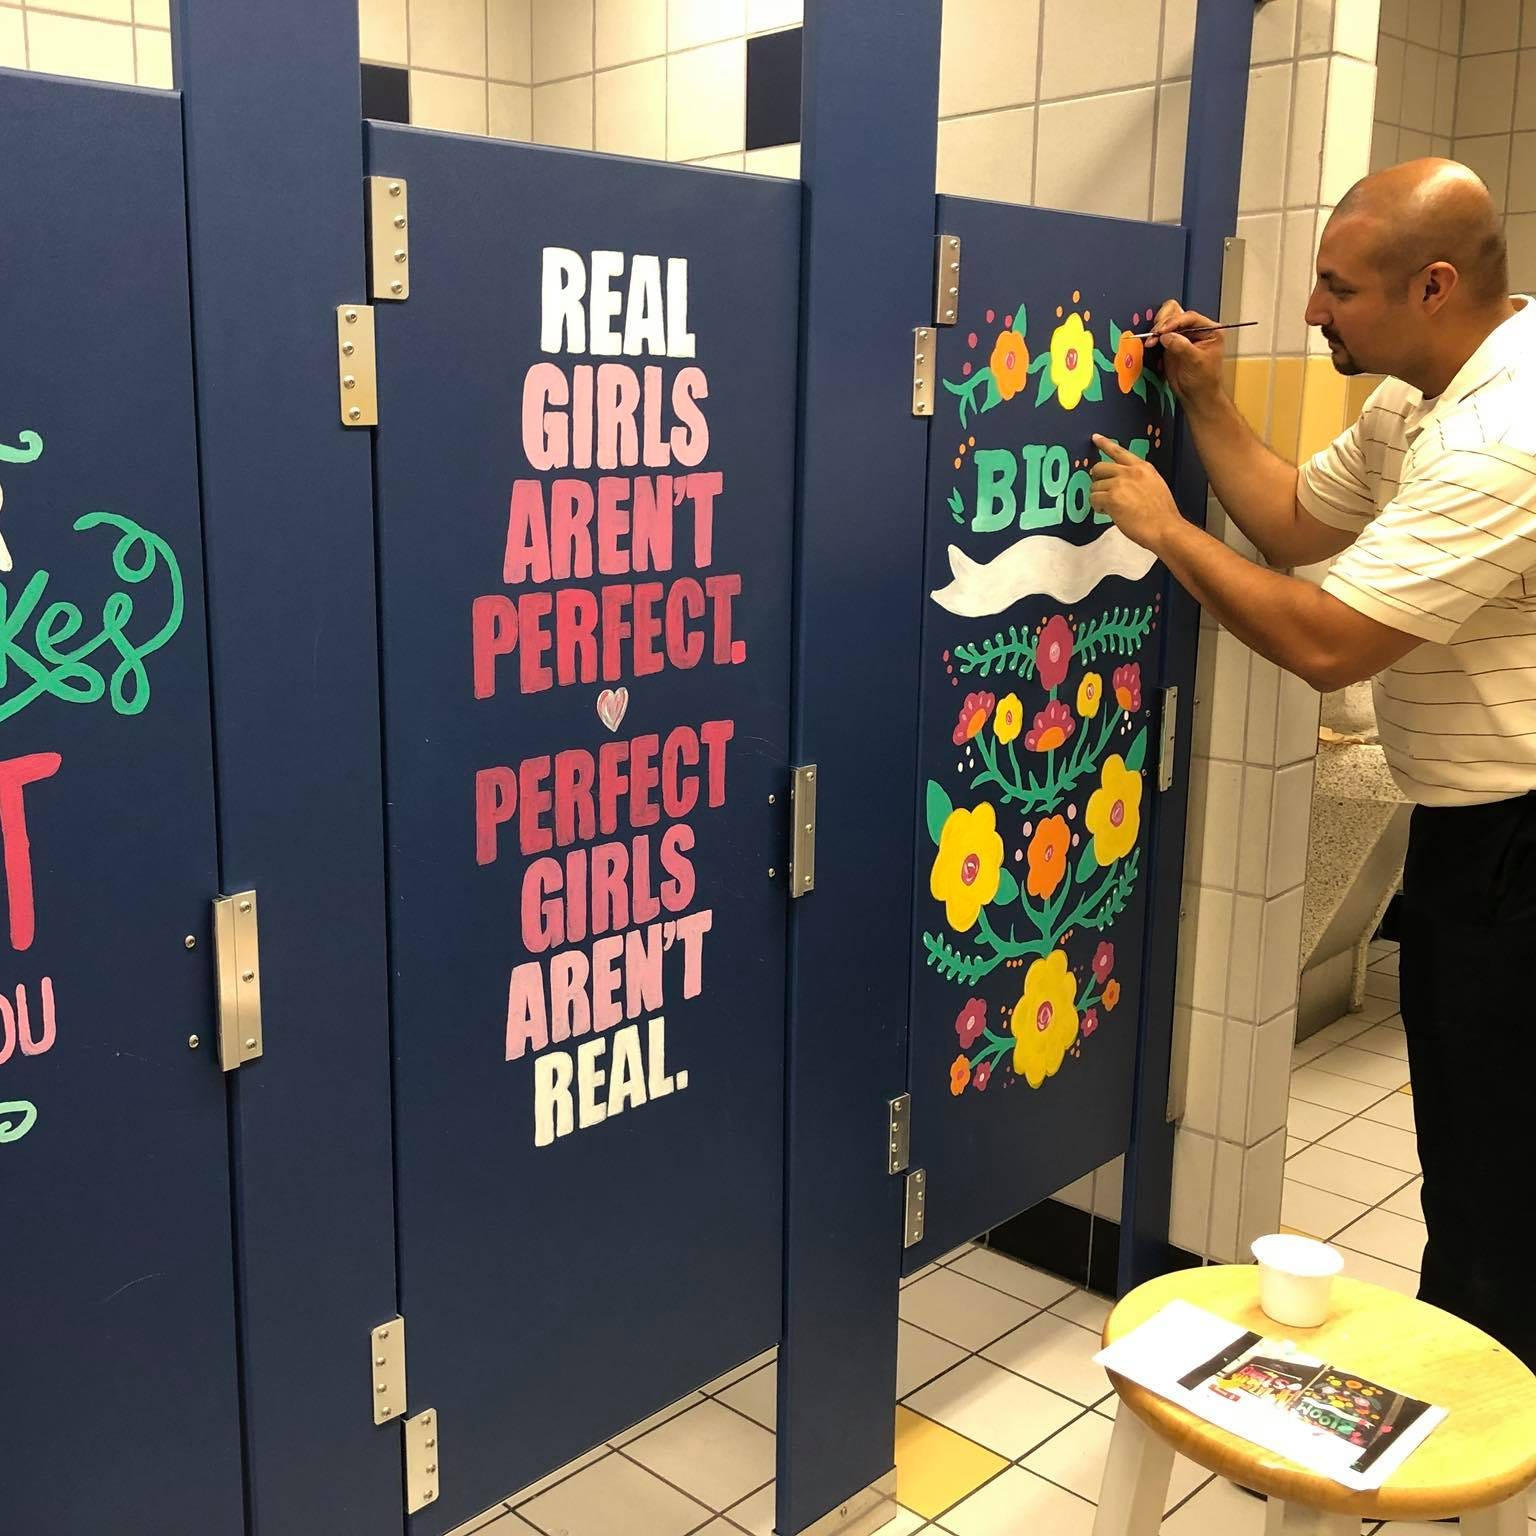 Teachers paint uplifting art on bathroom stalls for kids who need it most